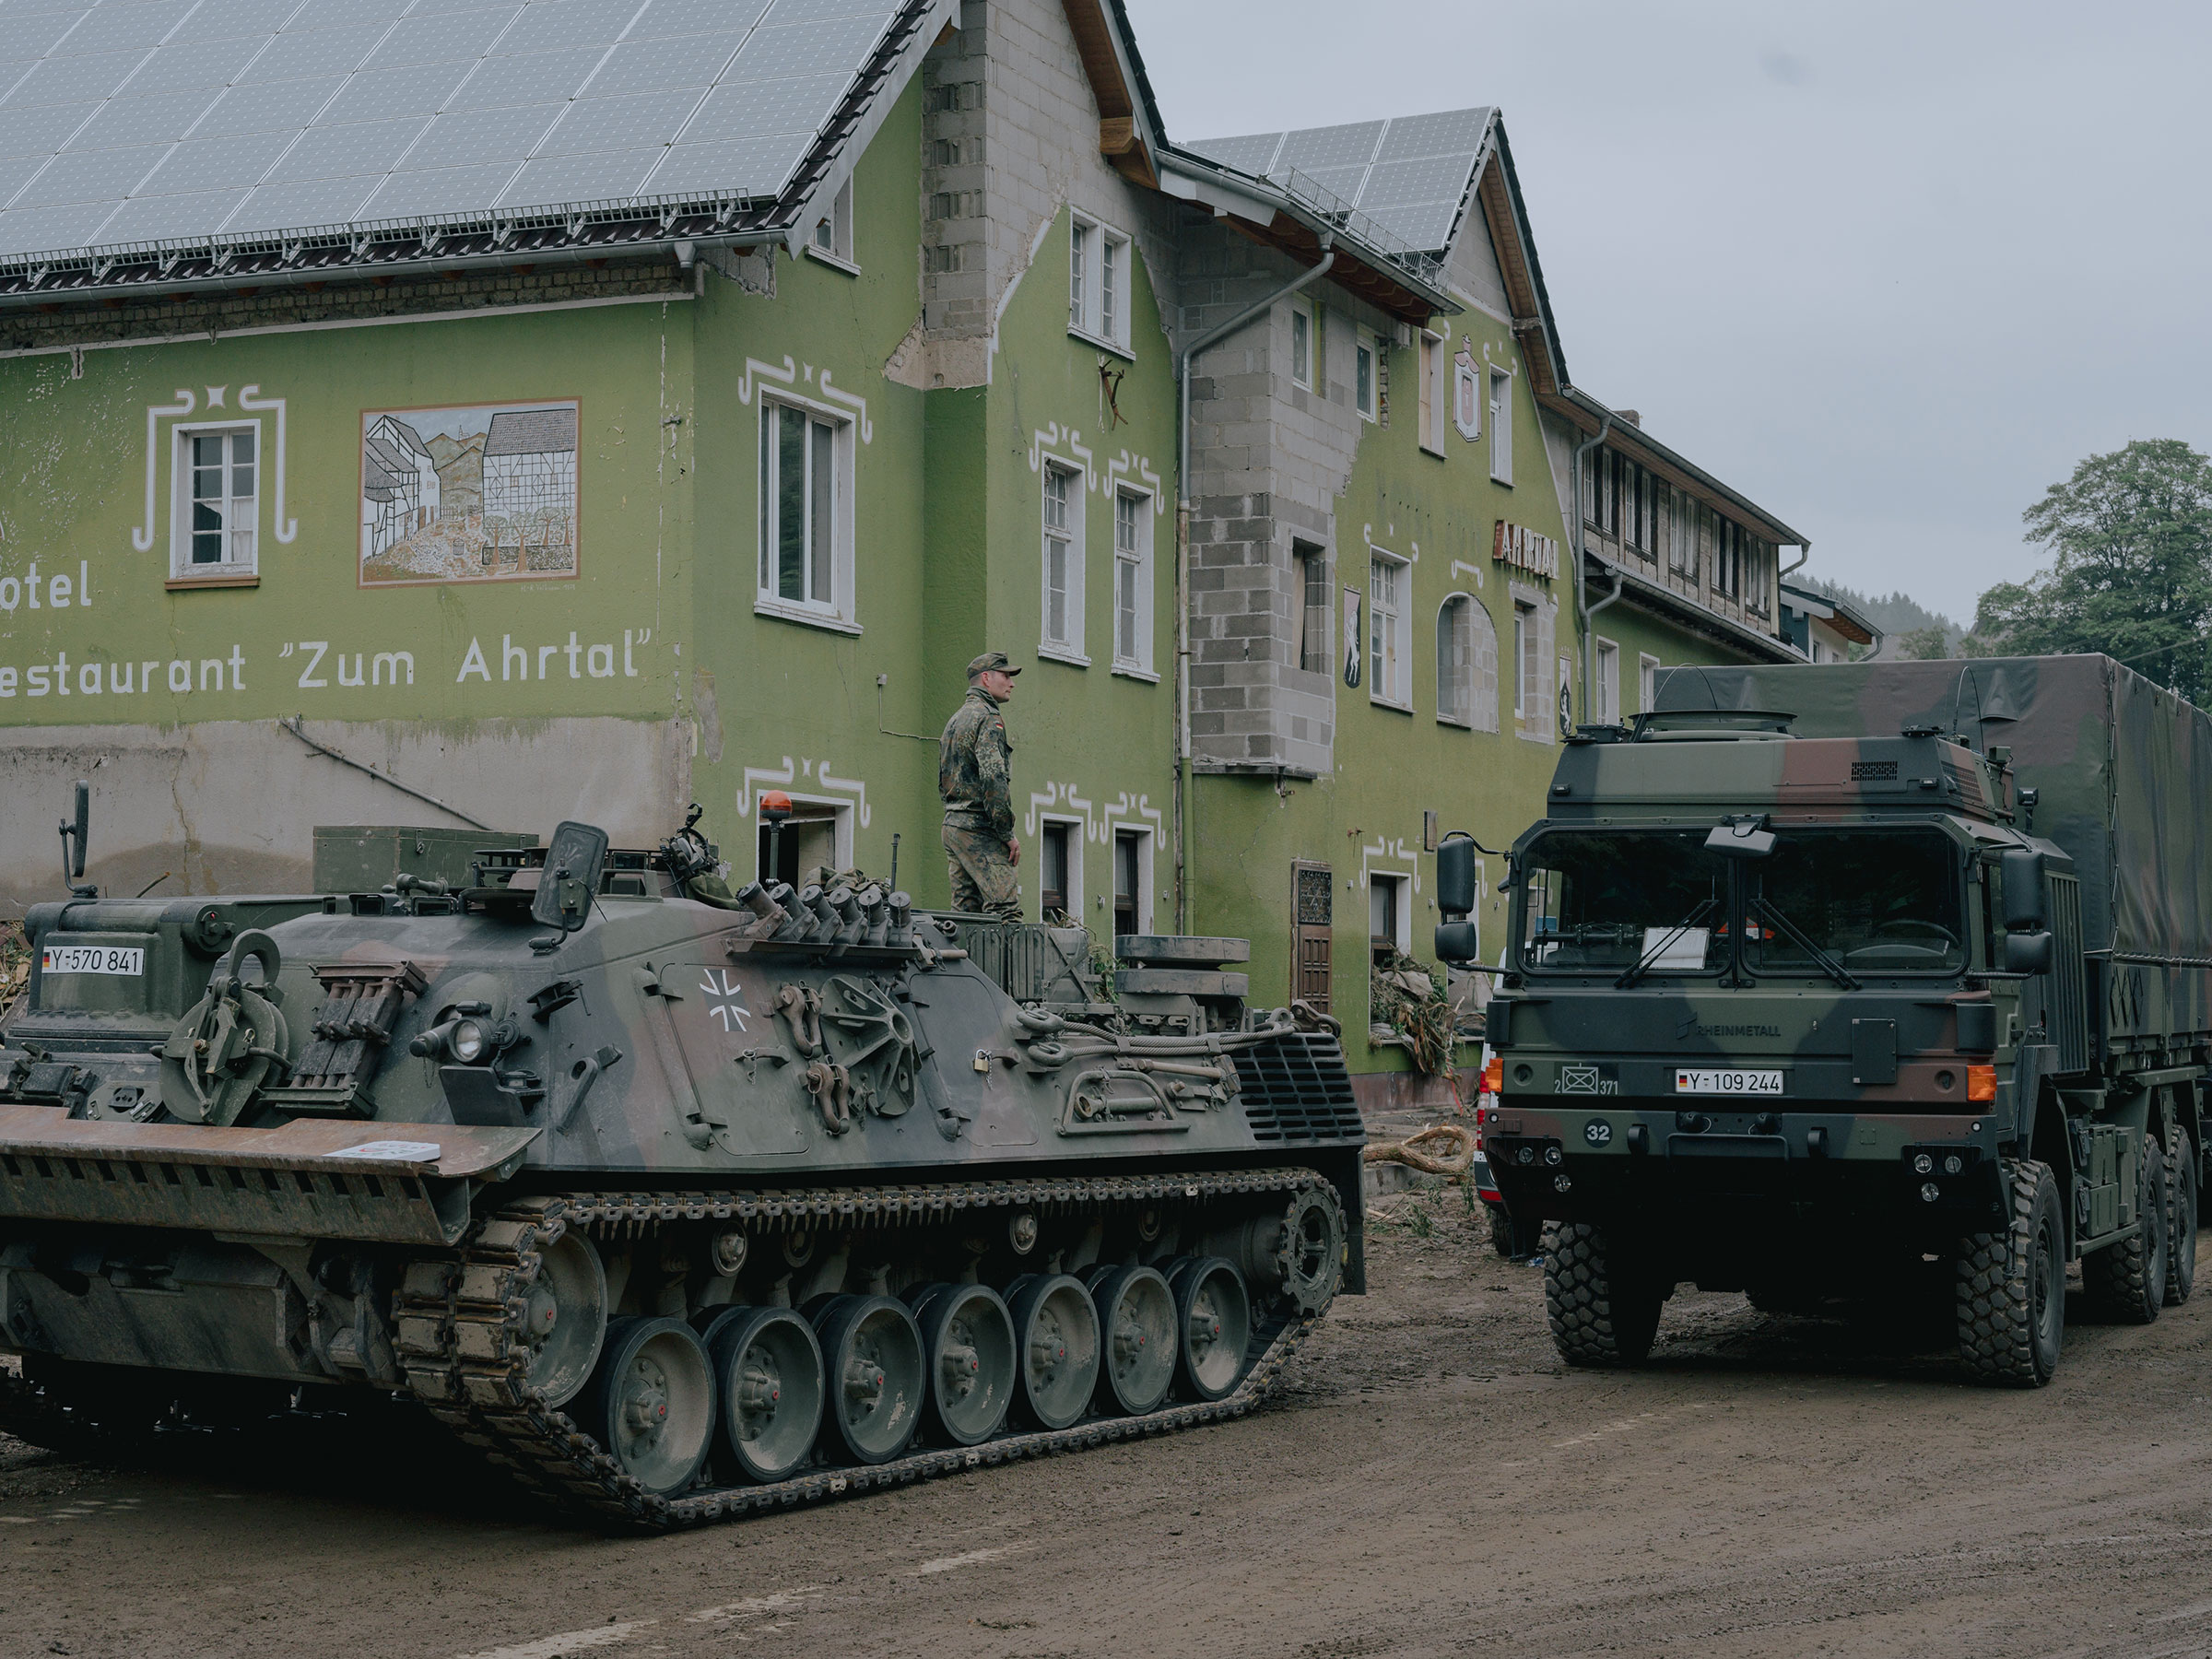 A military unit supports the clean-up efforts in the village of Schuld, Germany, on July 16.